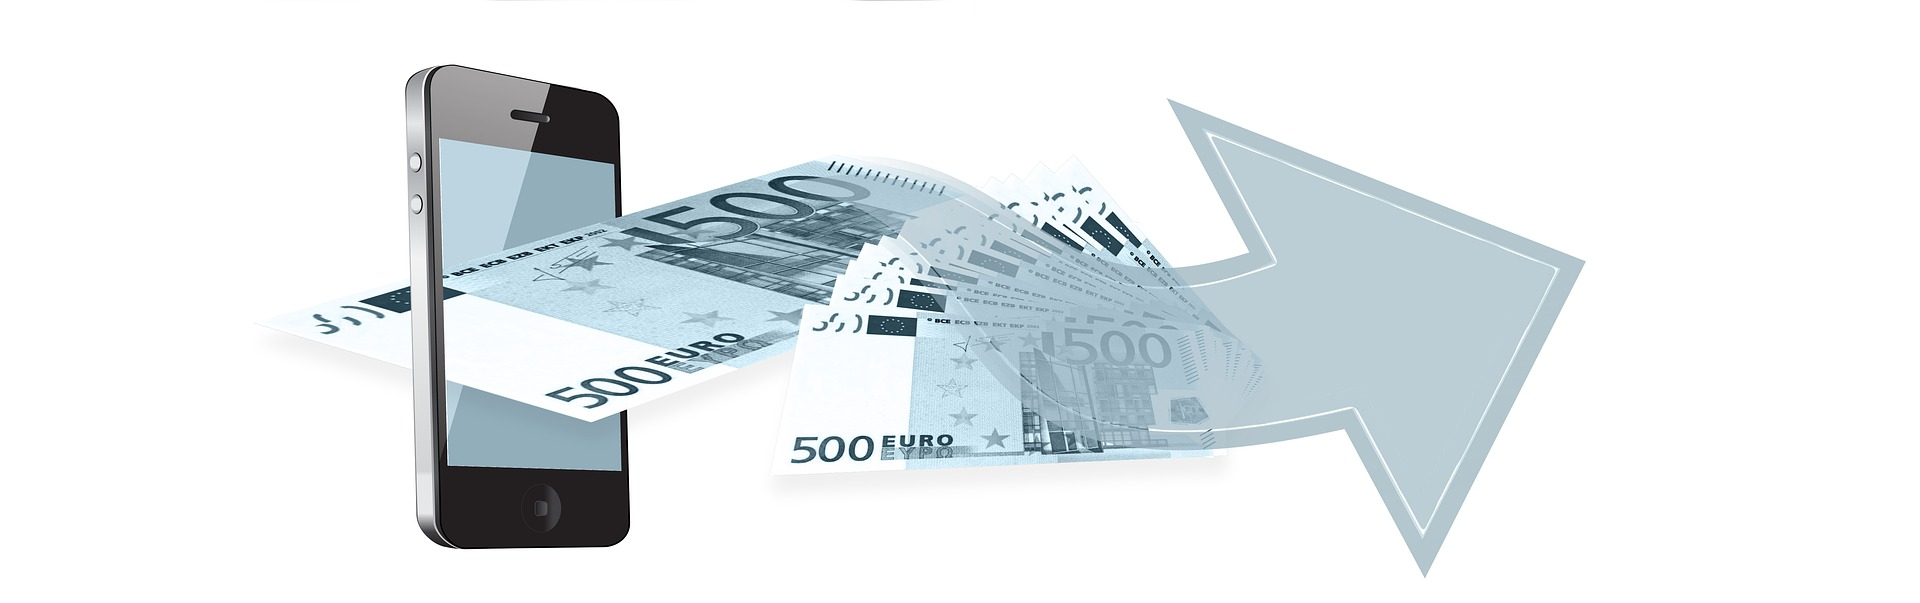 Faster Payments, Faster Fraud